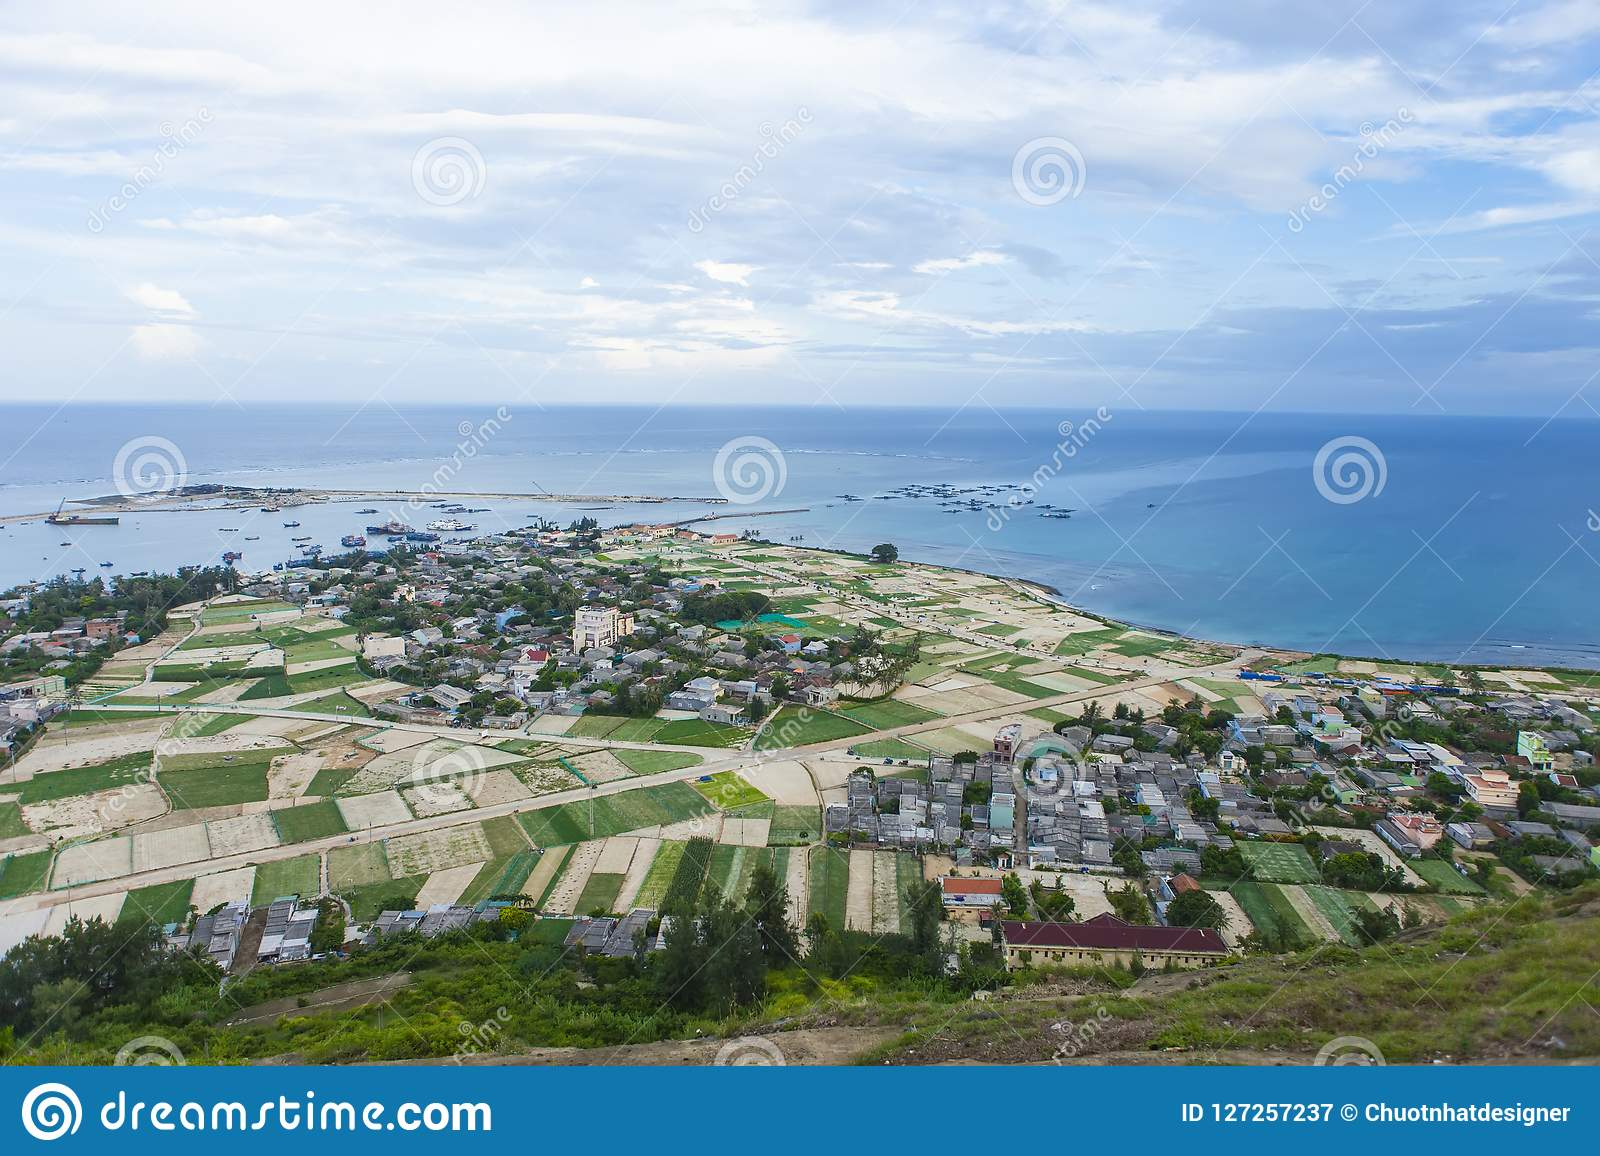 Beautiful Landscape With Garlic Field Coconut And Beach In Lyson Island Quang Ngai Vietnam Stock Image Image Of Industry Guitar 127257237